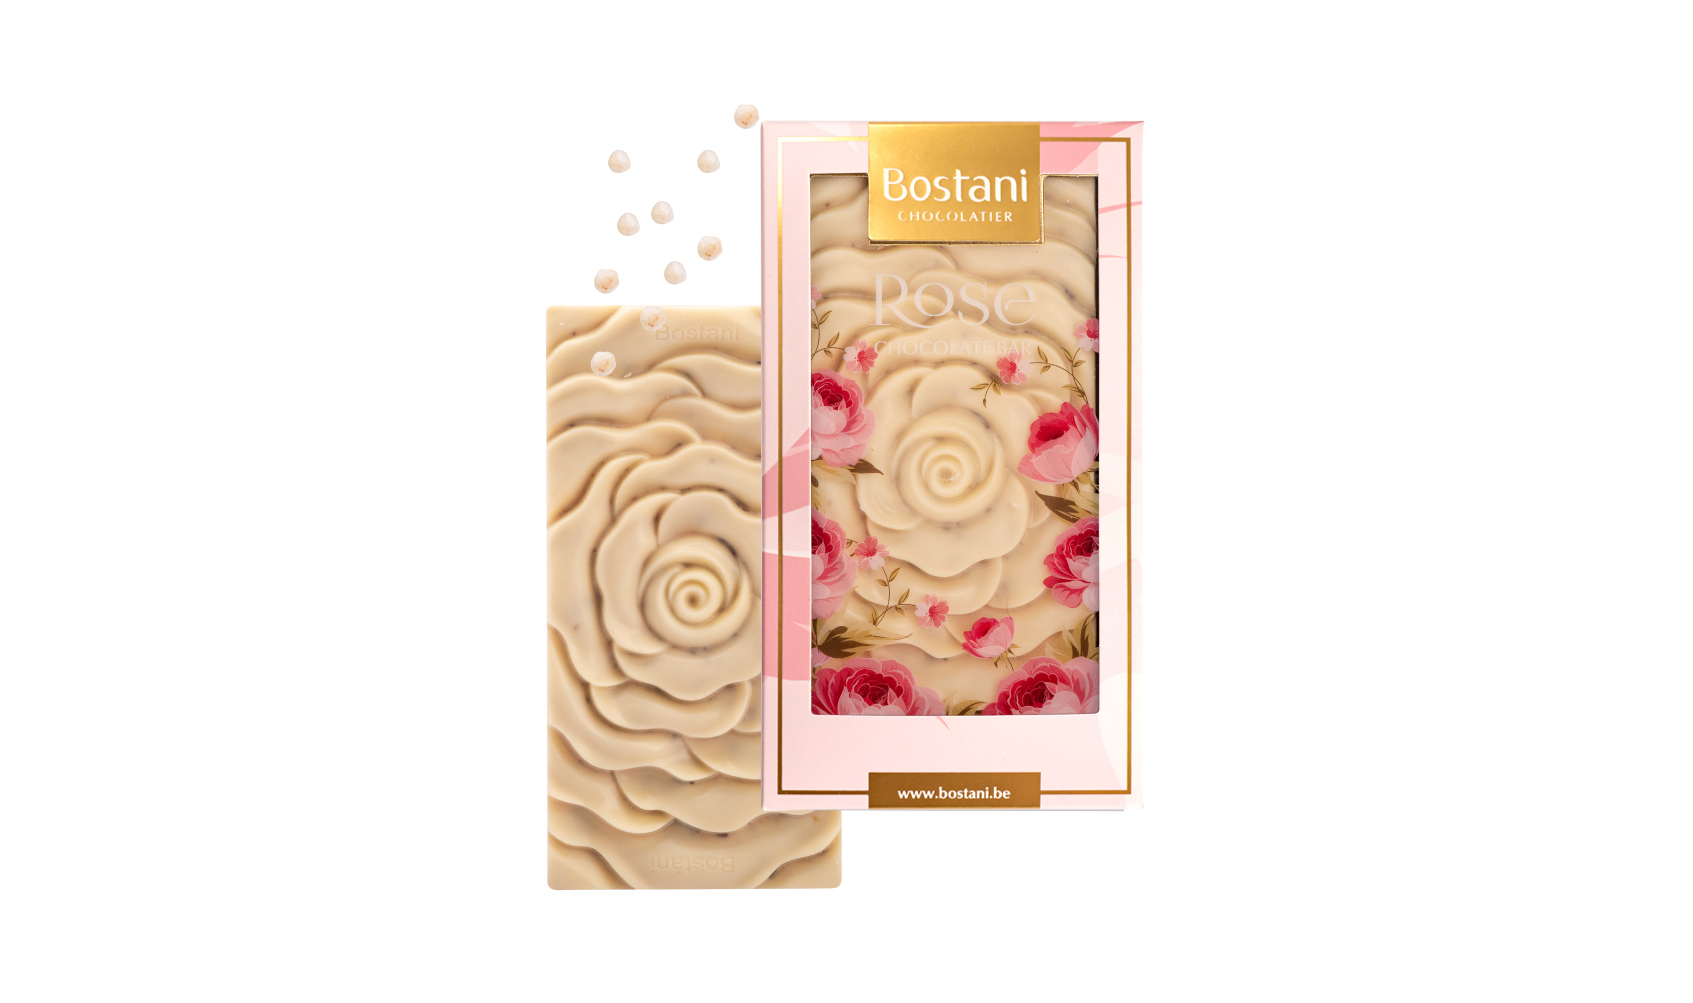 Rose Bar White Chocolate Crispy 100g